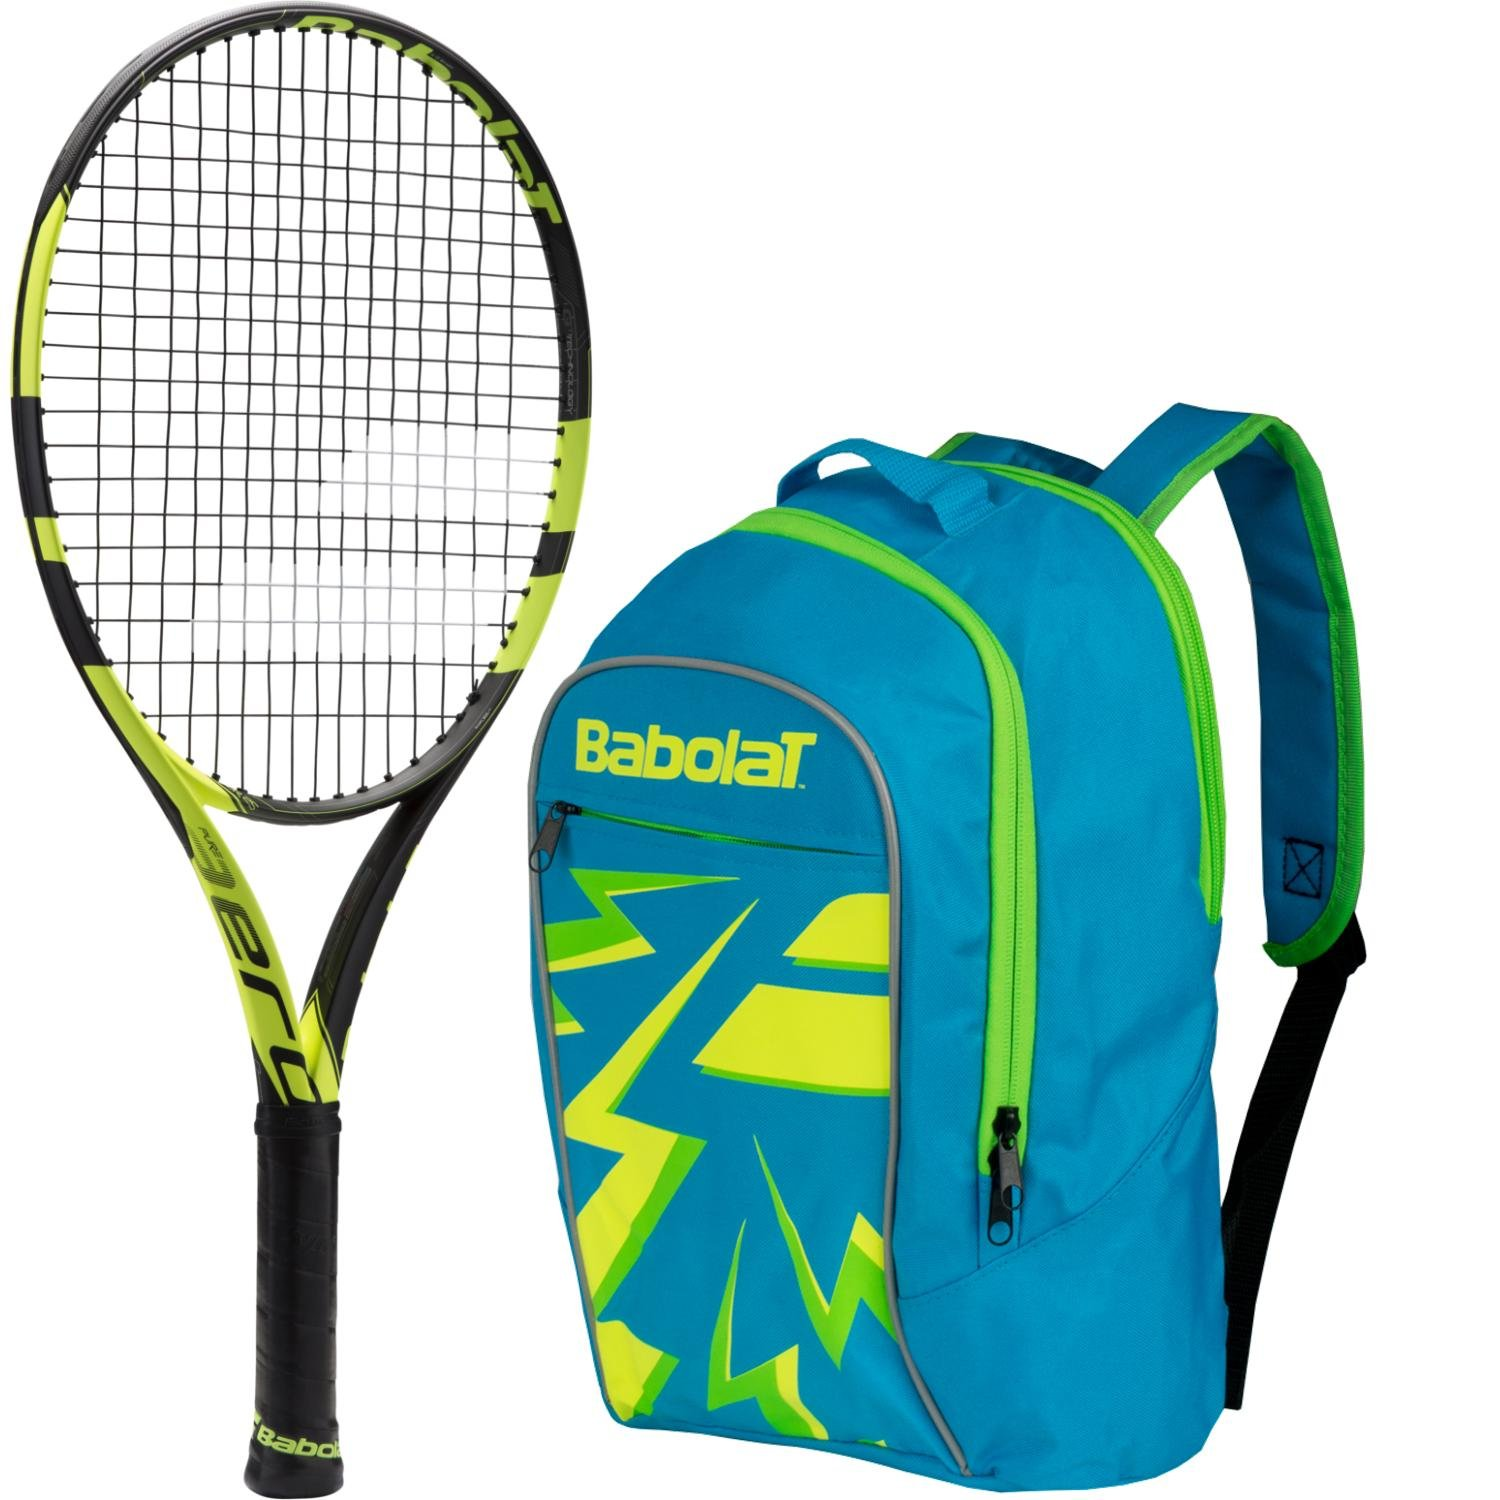 Babolat Pure Aero Junior 26 Inch Black/Yellow Tennis Racquet bundled with a Blue Child's Tennis Backpack